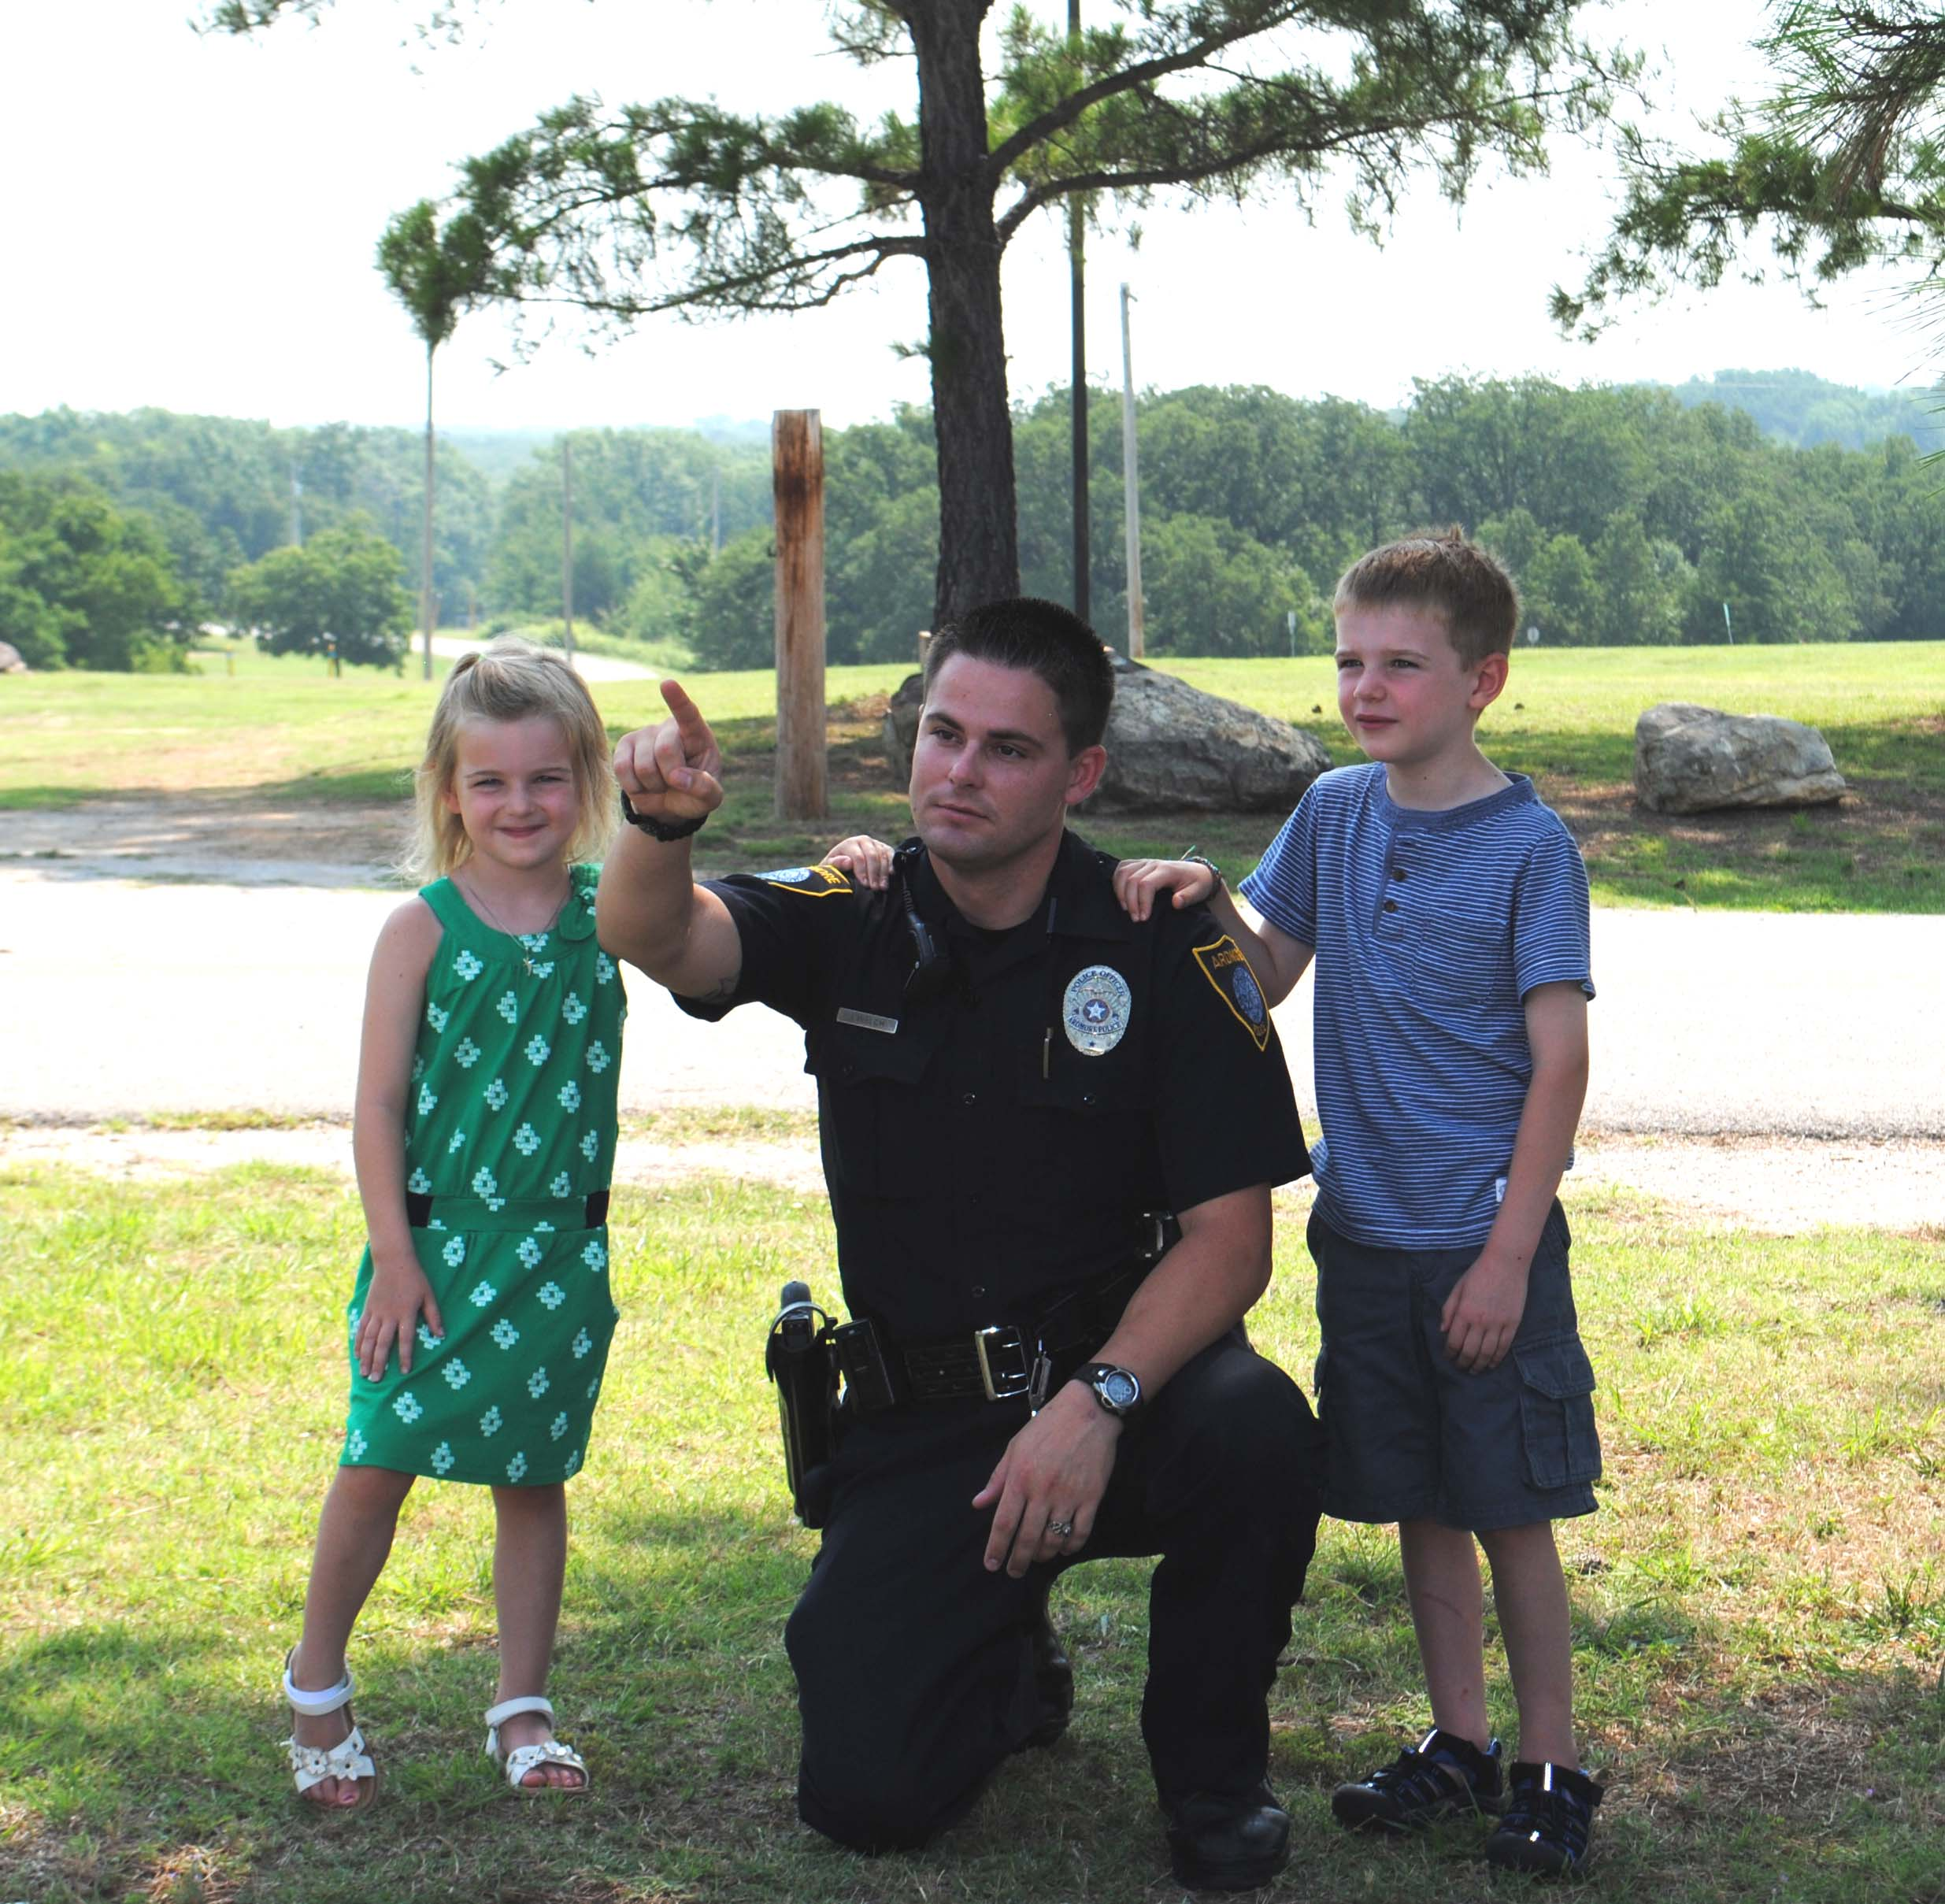 photo of officer with two children